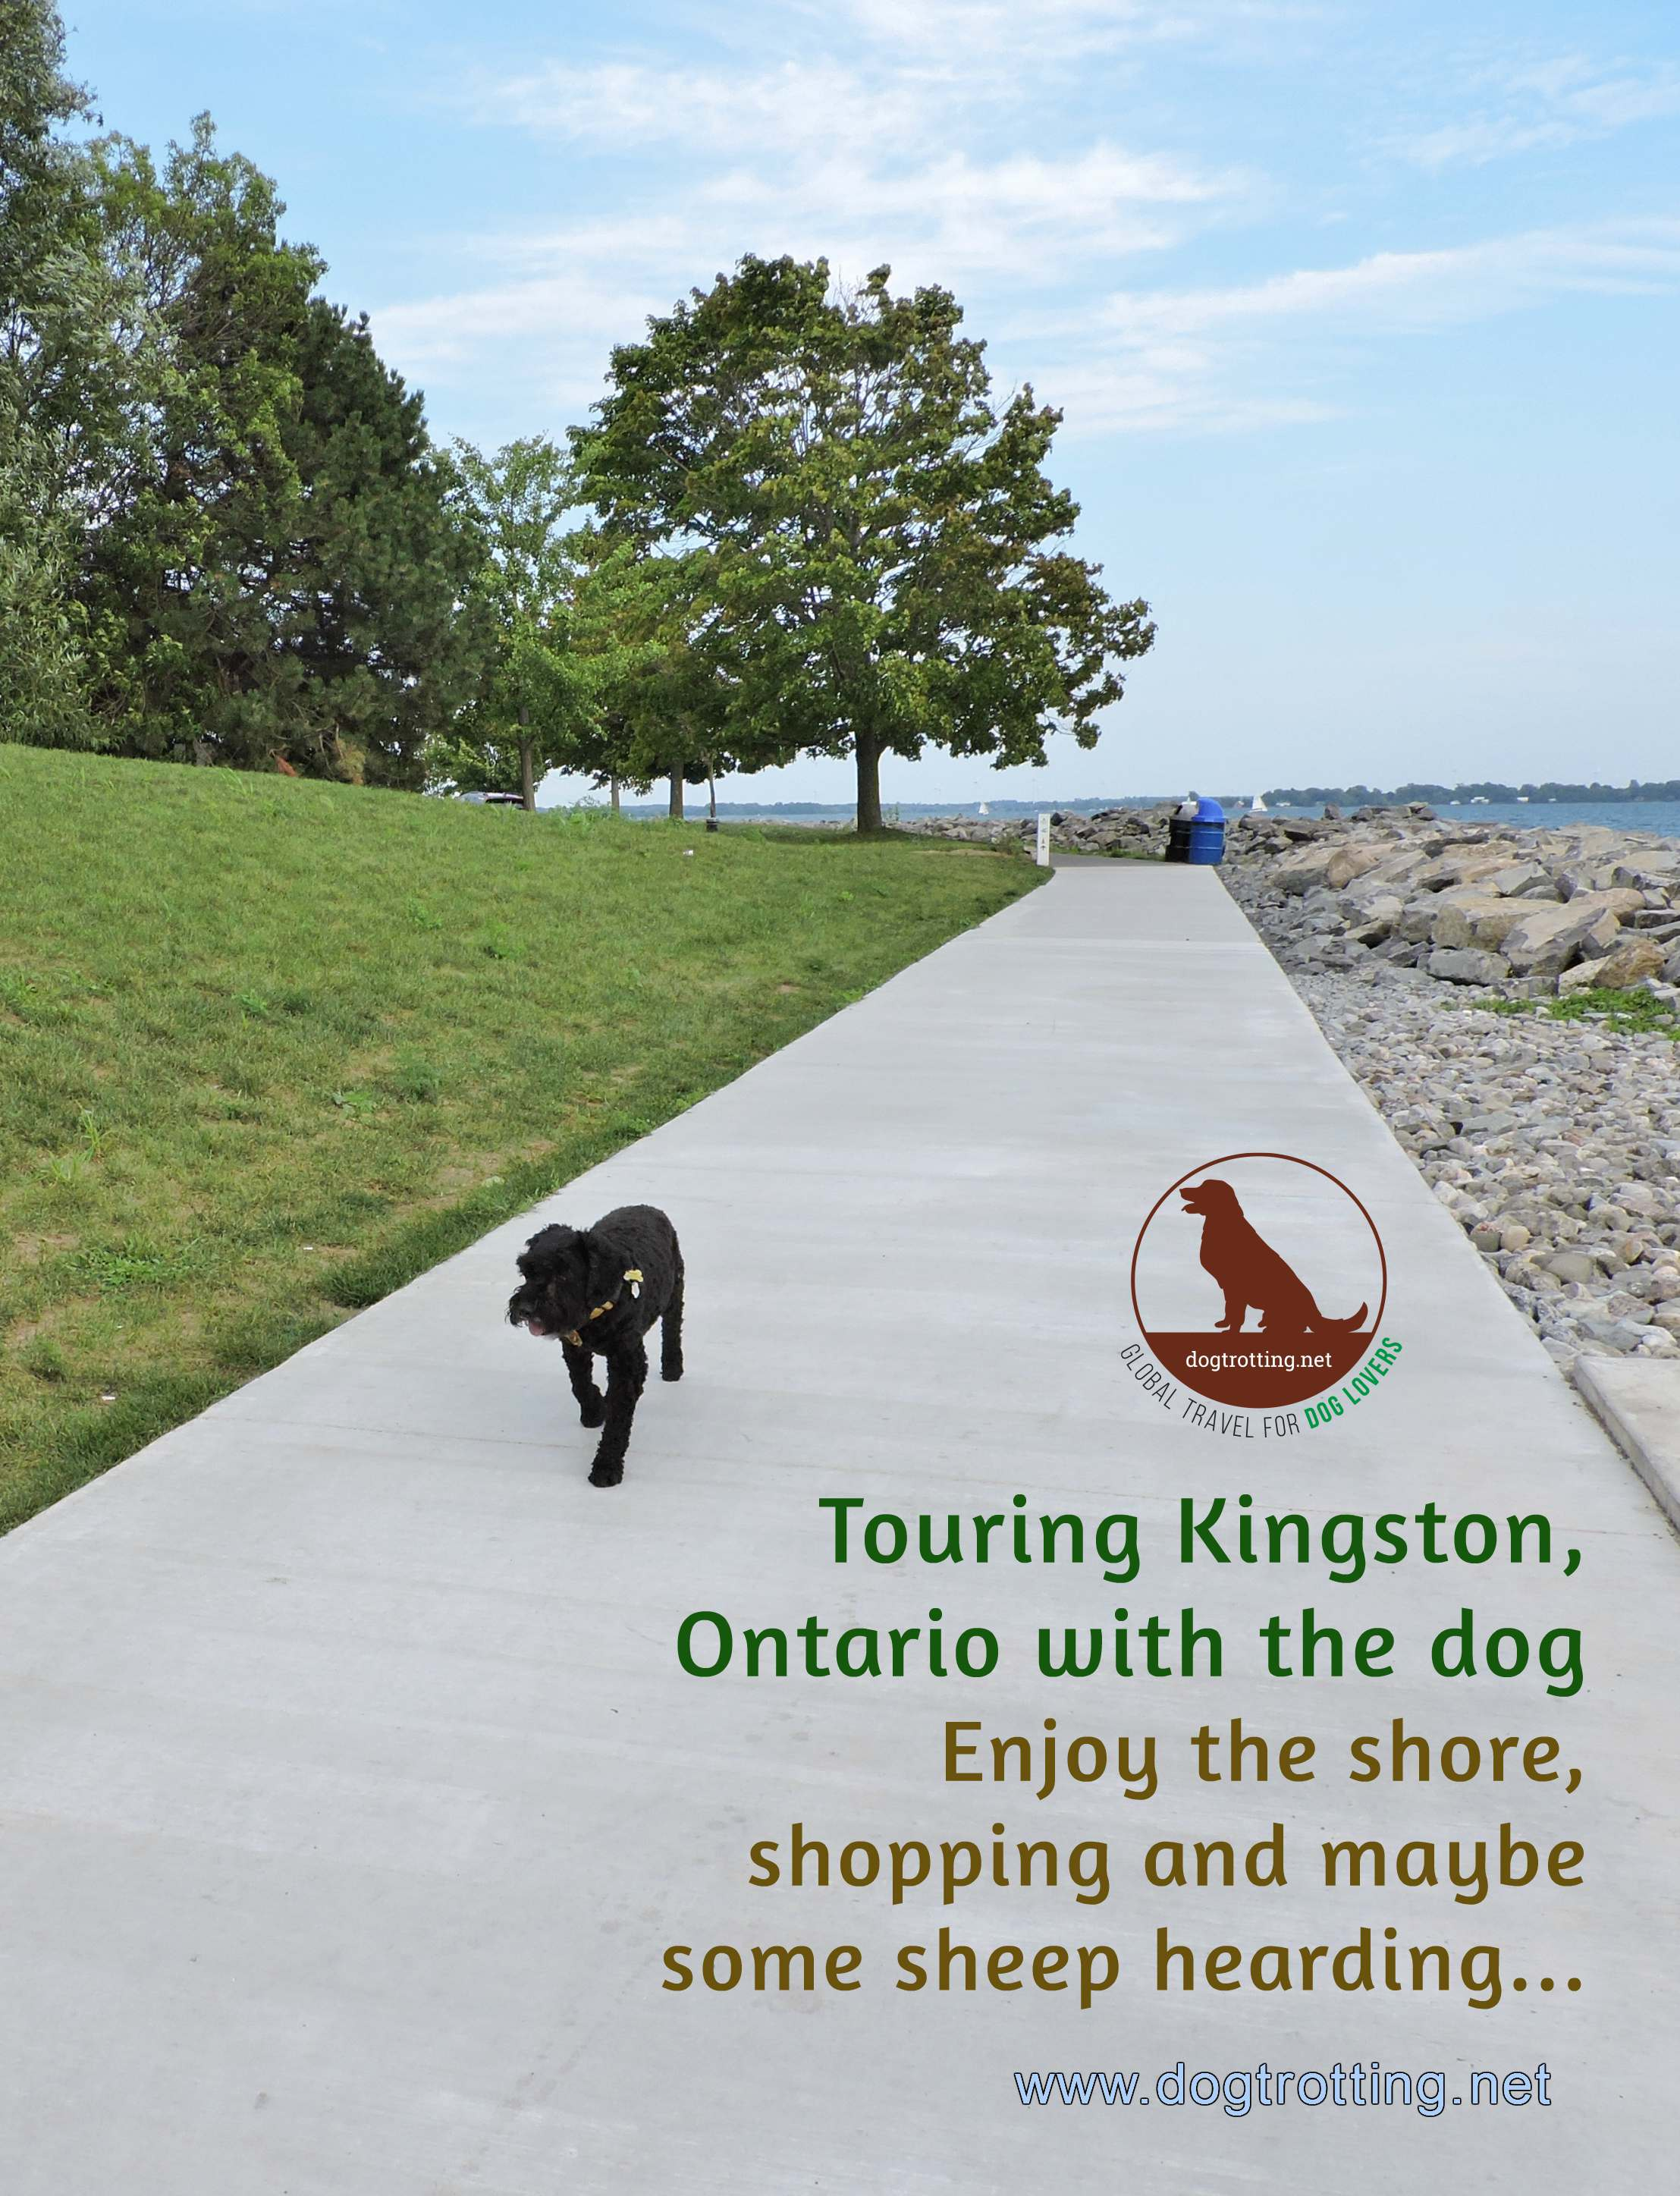 Travel Kingston, Ontario: Where to go (and not go) with your dog